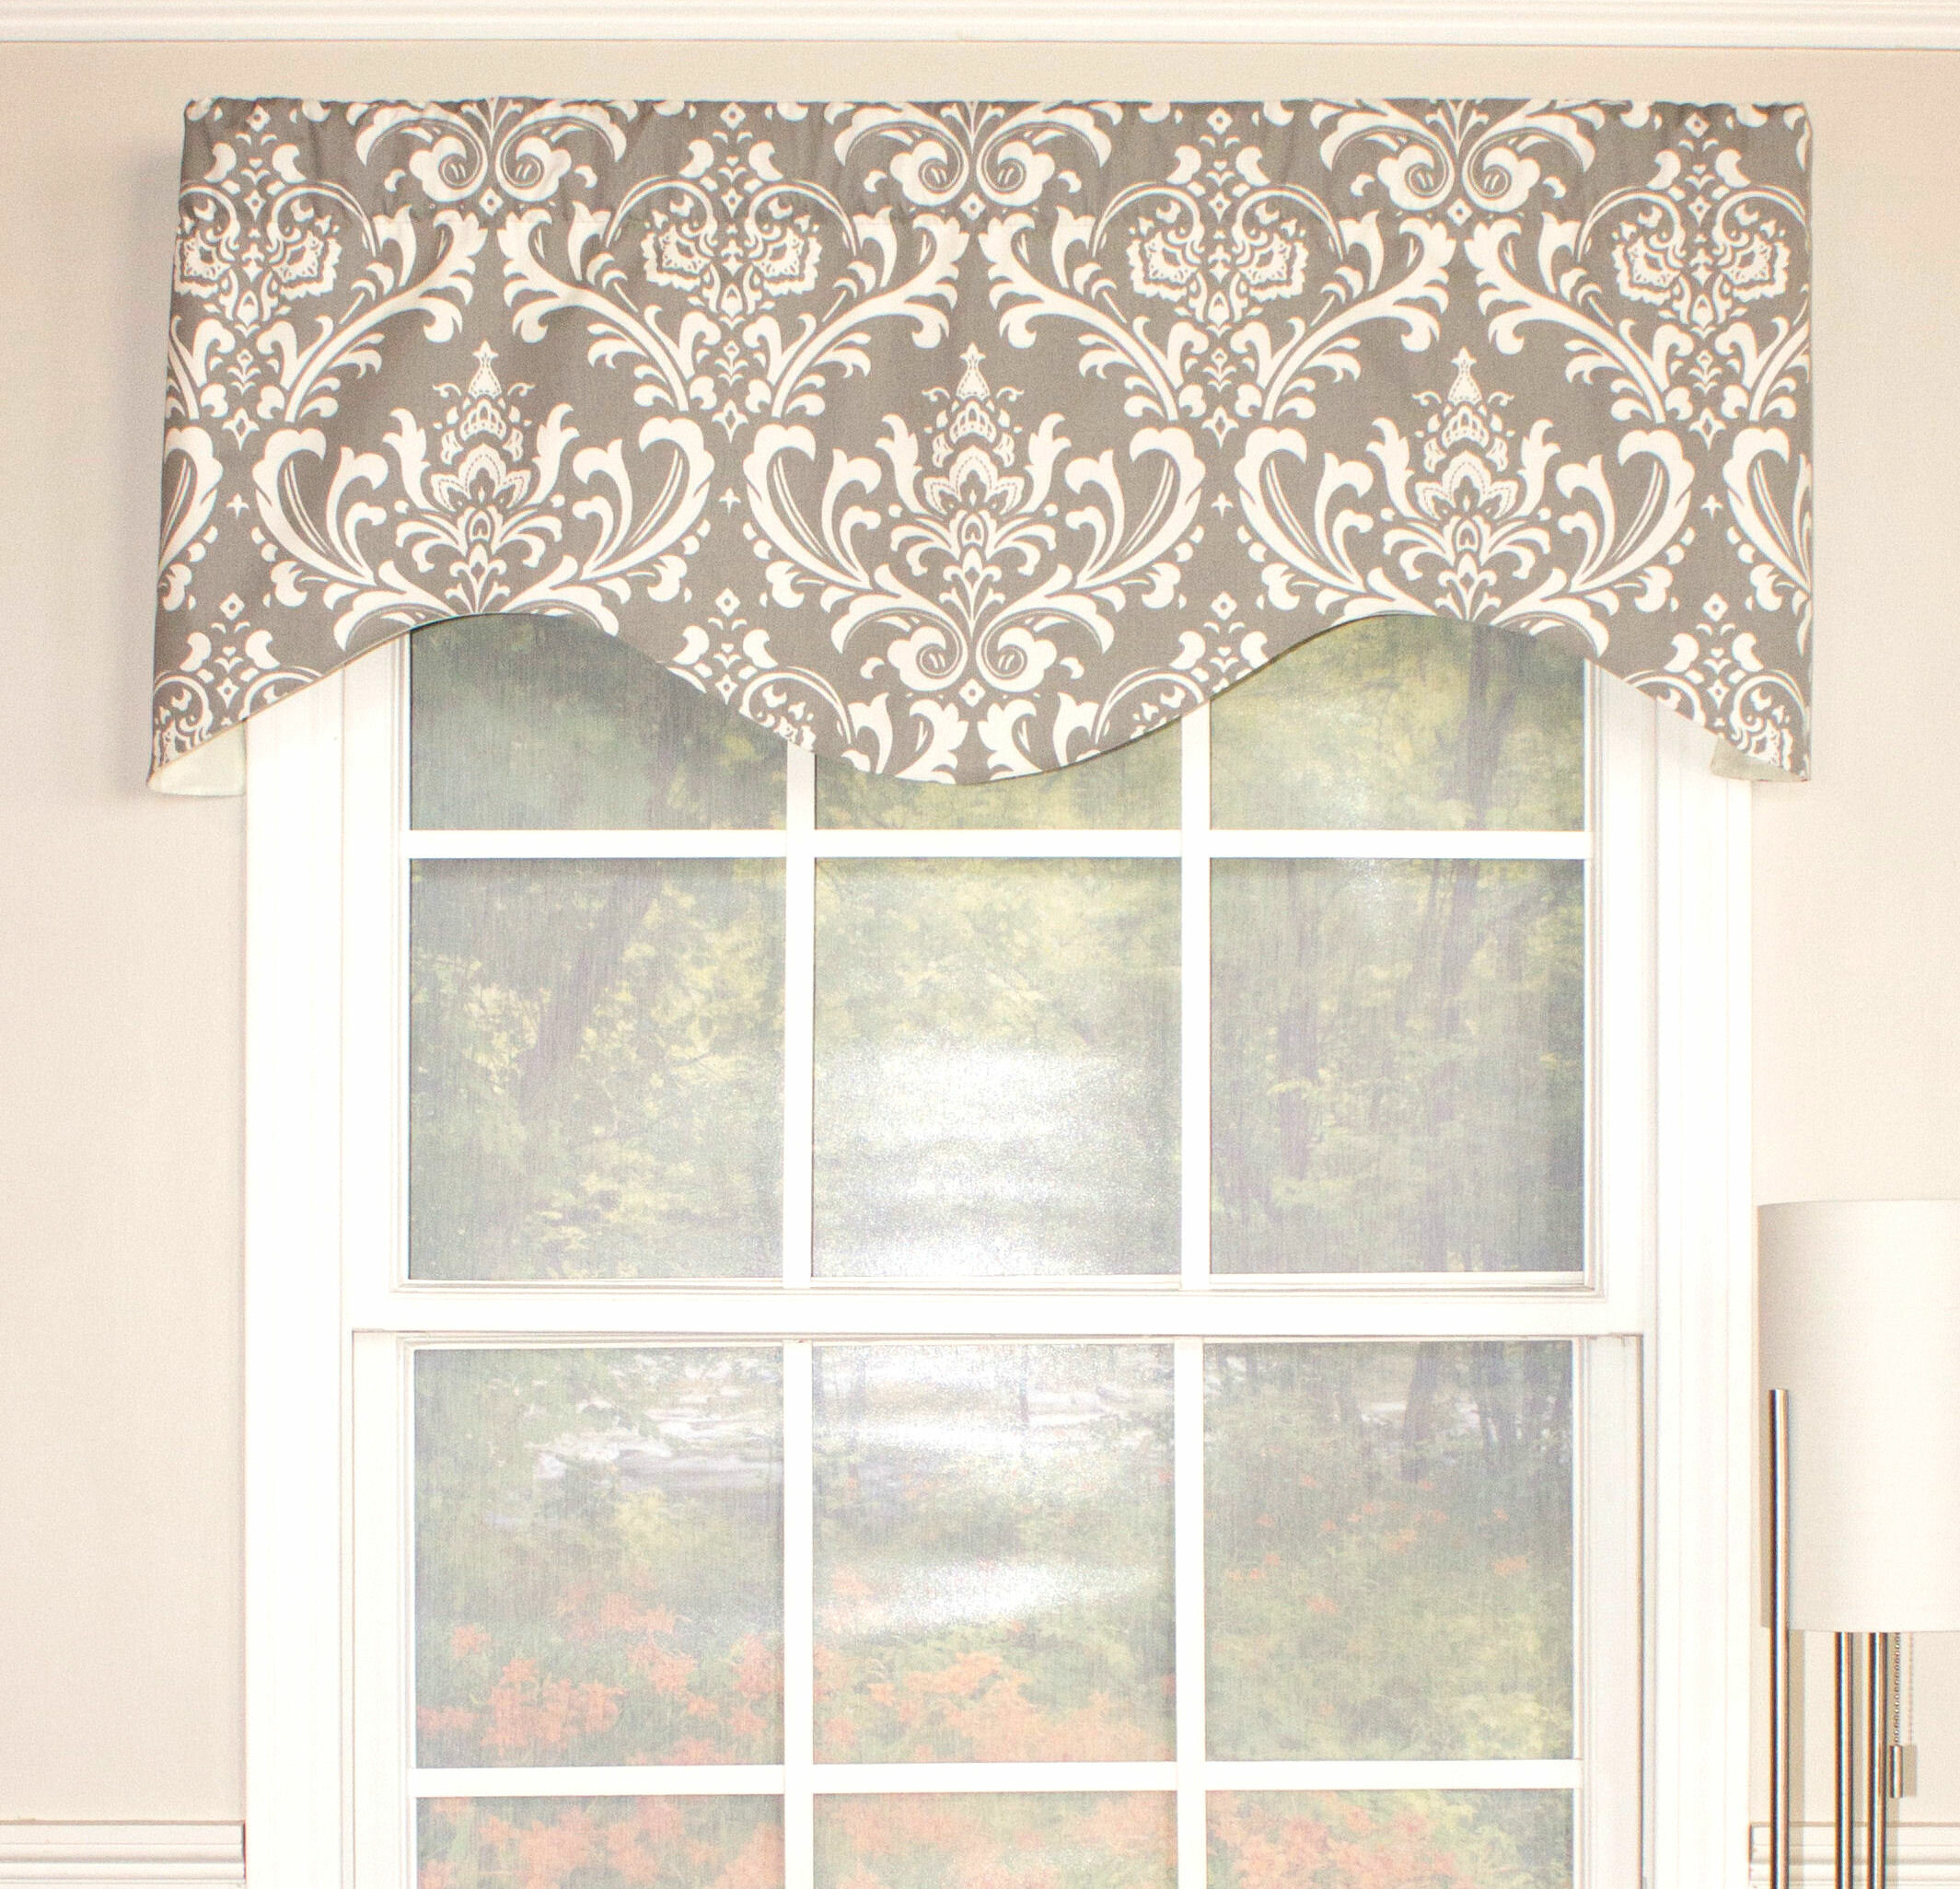 simple unique of windows large for kitchen window best size ideas valances curtainssimple valance all